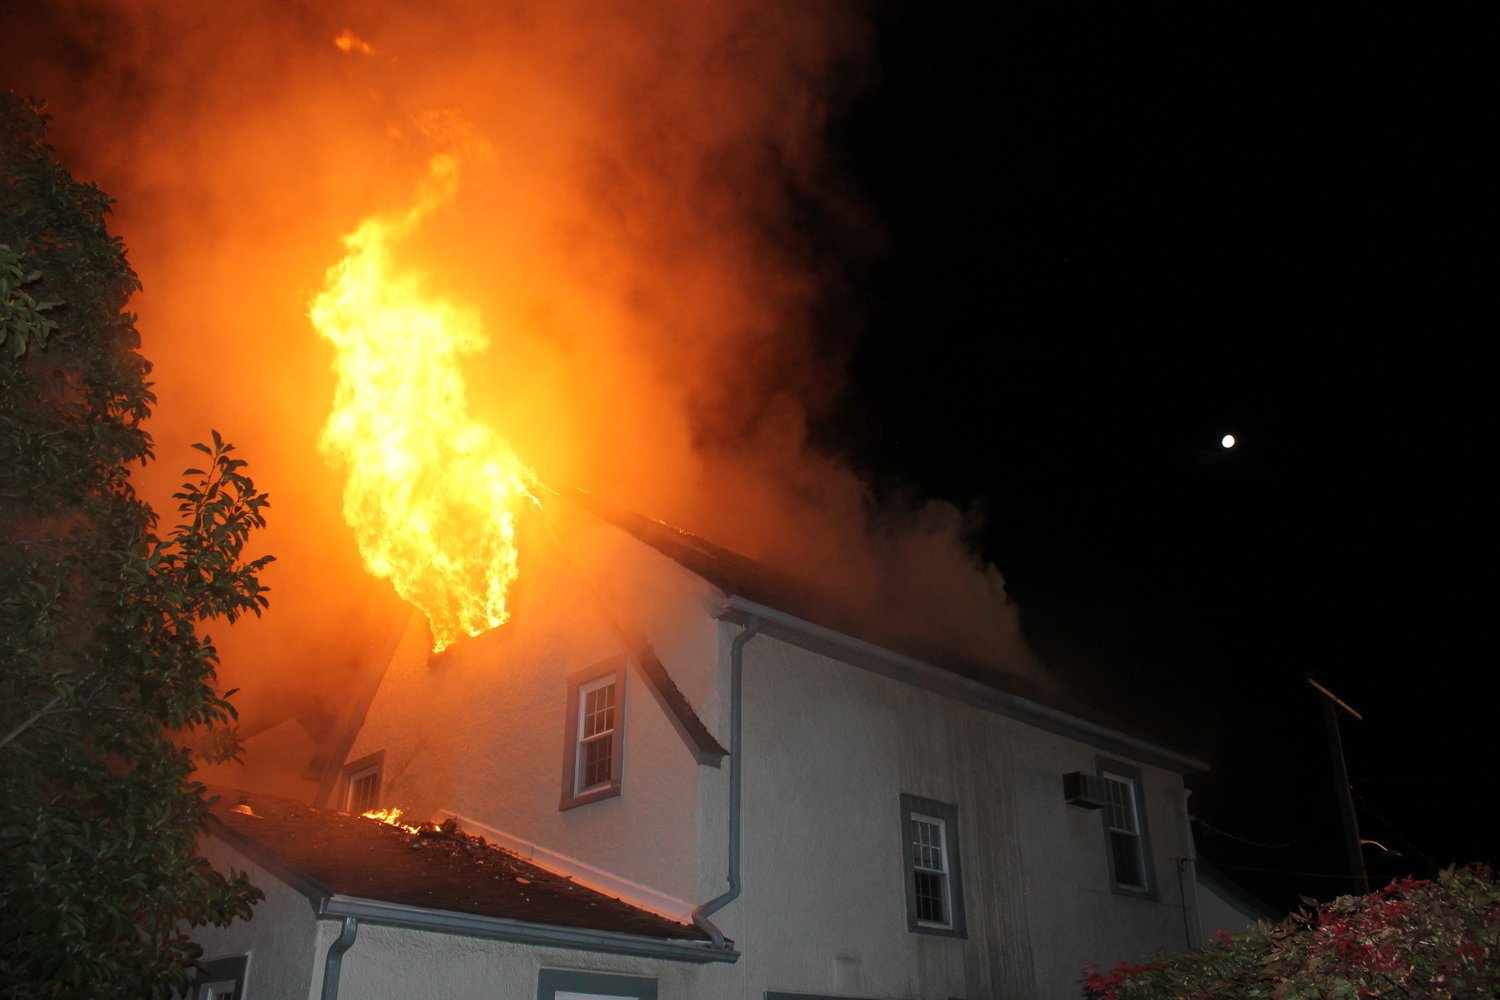 Lynbrook firefighters responded to a severe fire that broke out in the attic of a home on Durland Road on Sept. 10.